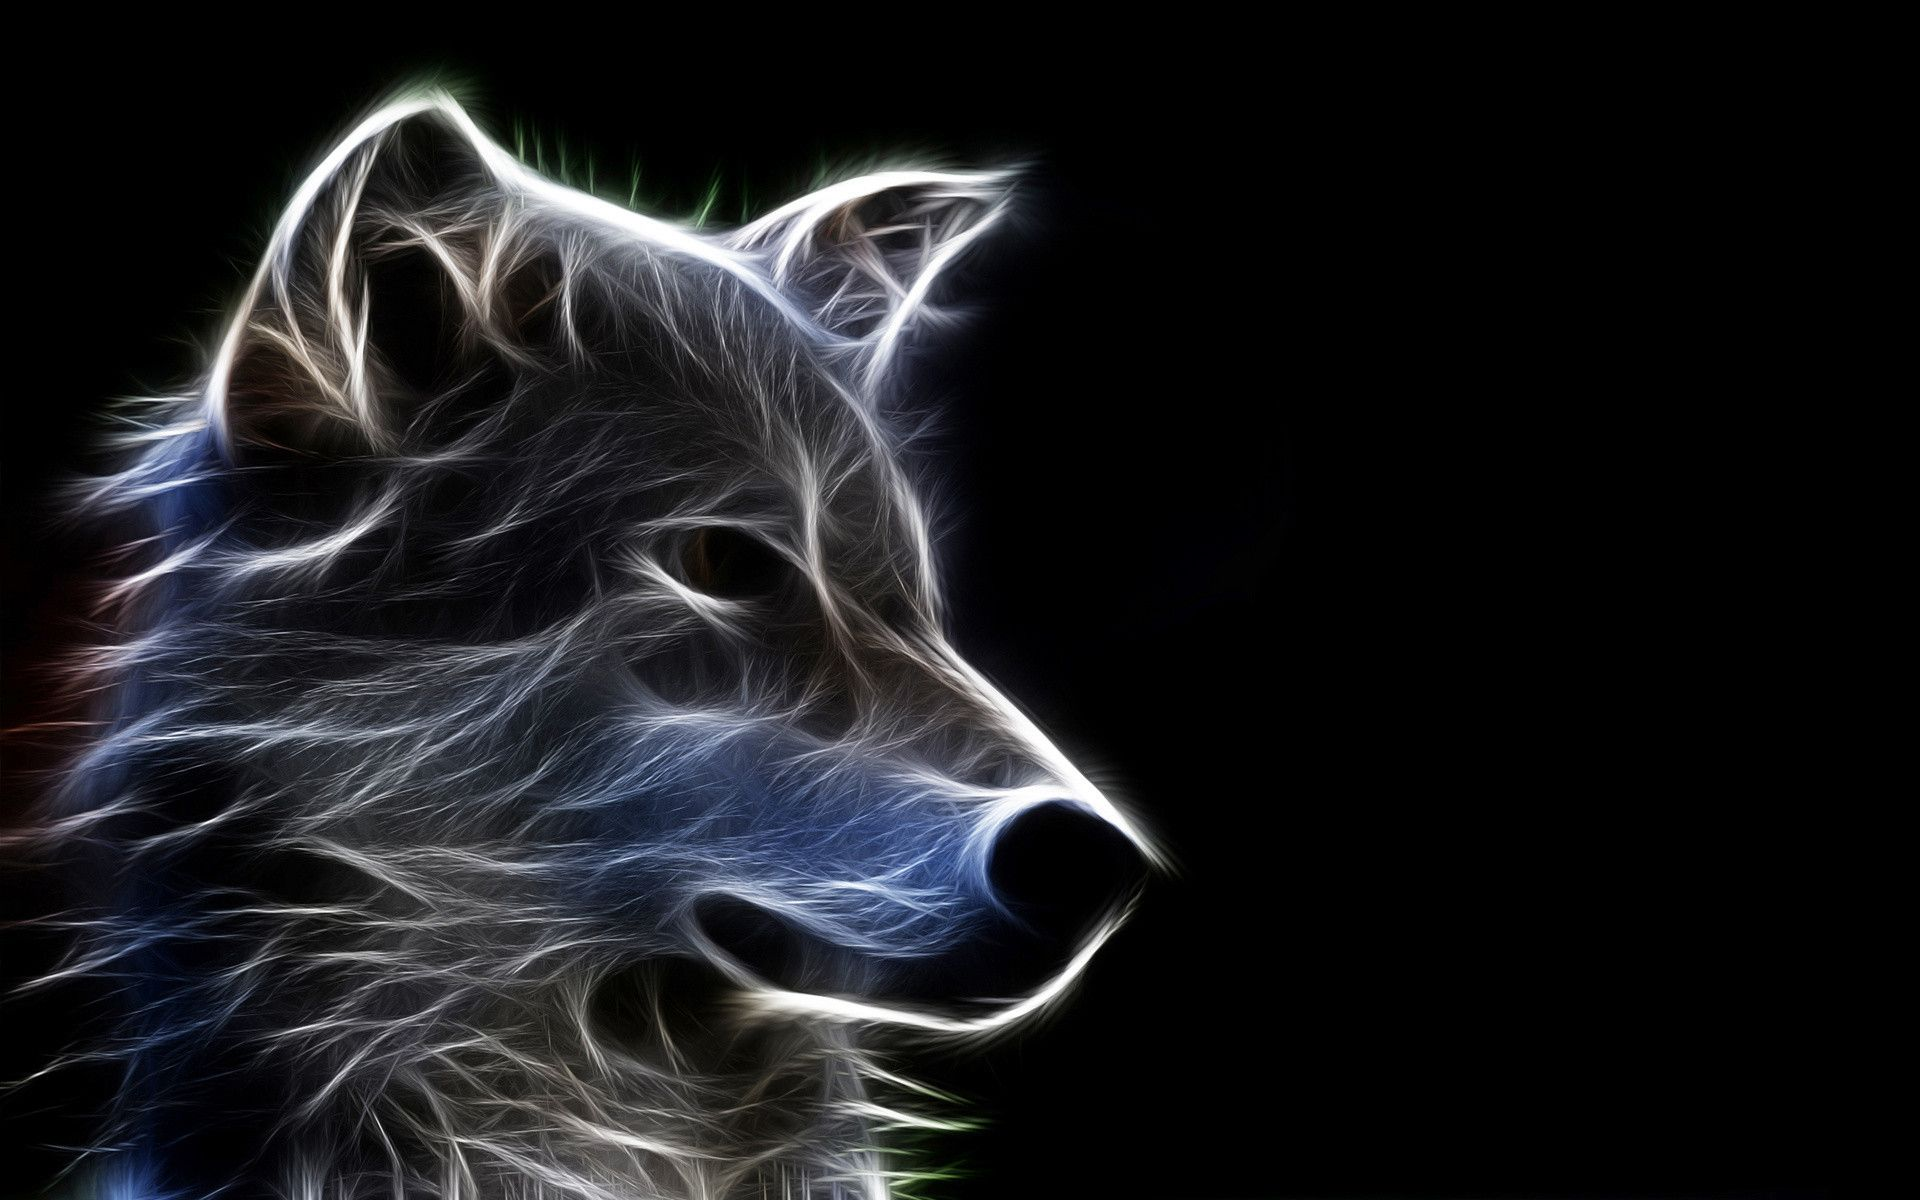 1920x1200 Neon Wolf Wallpaper (54+ images)